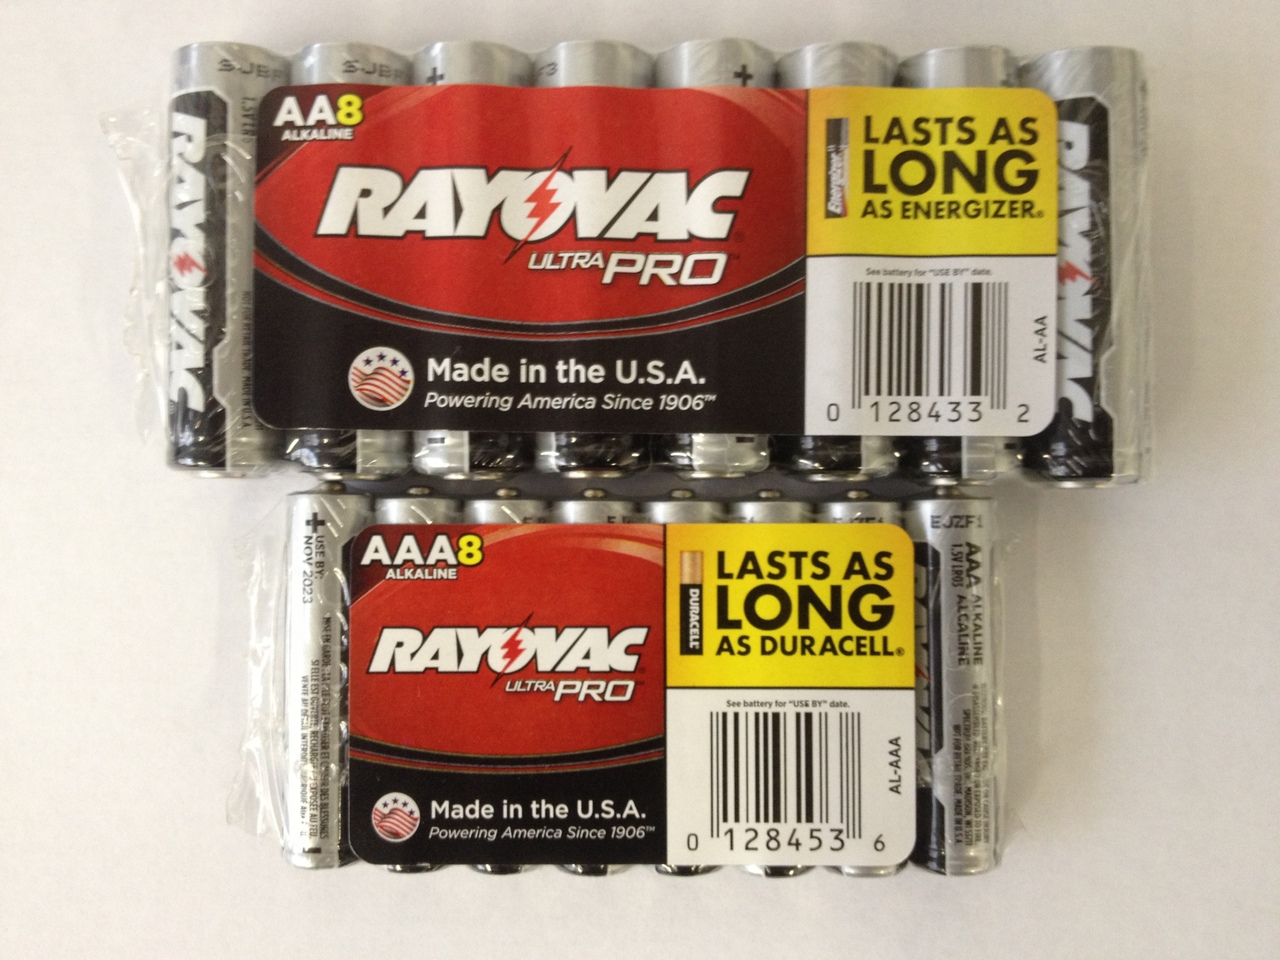 16 Piece Combo Pack - Rayovac UltraPRO Alkaline 8 AAA Batteries And 8 AA Batteries + FREE SHIPPING!